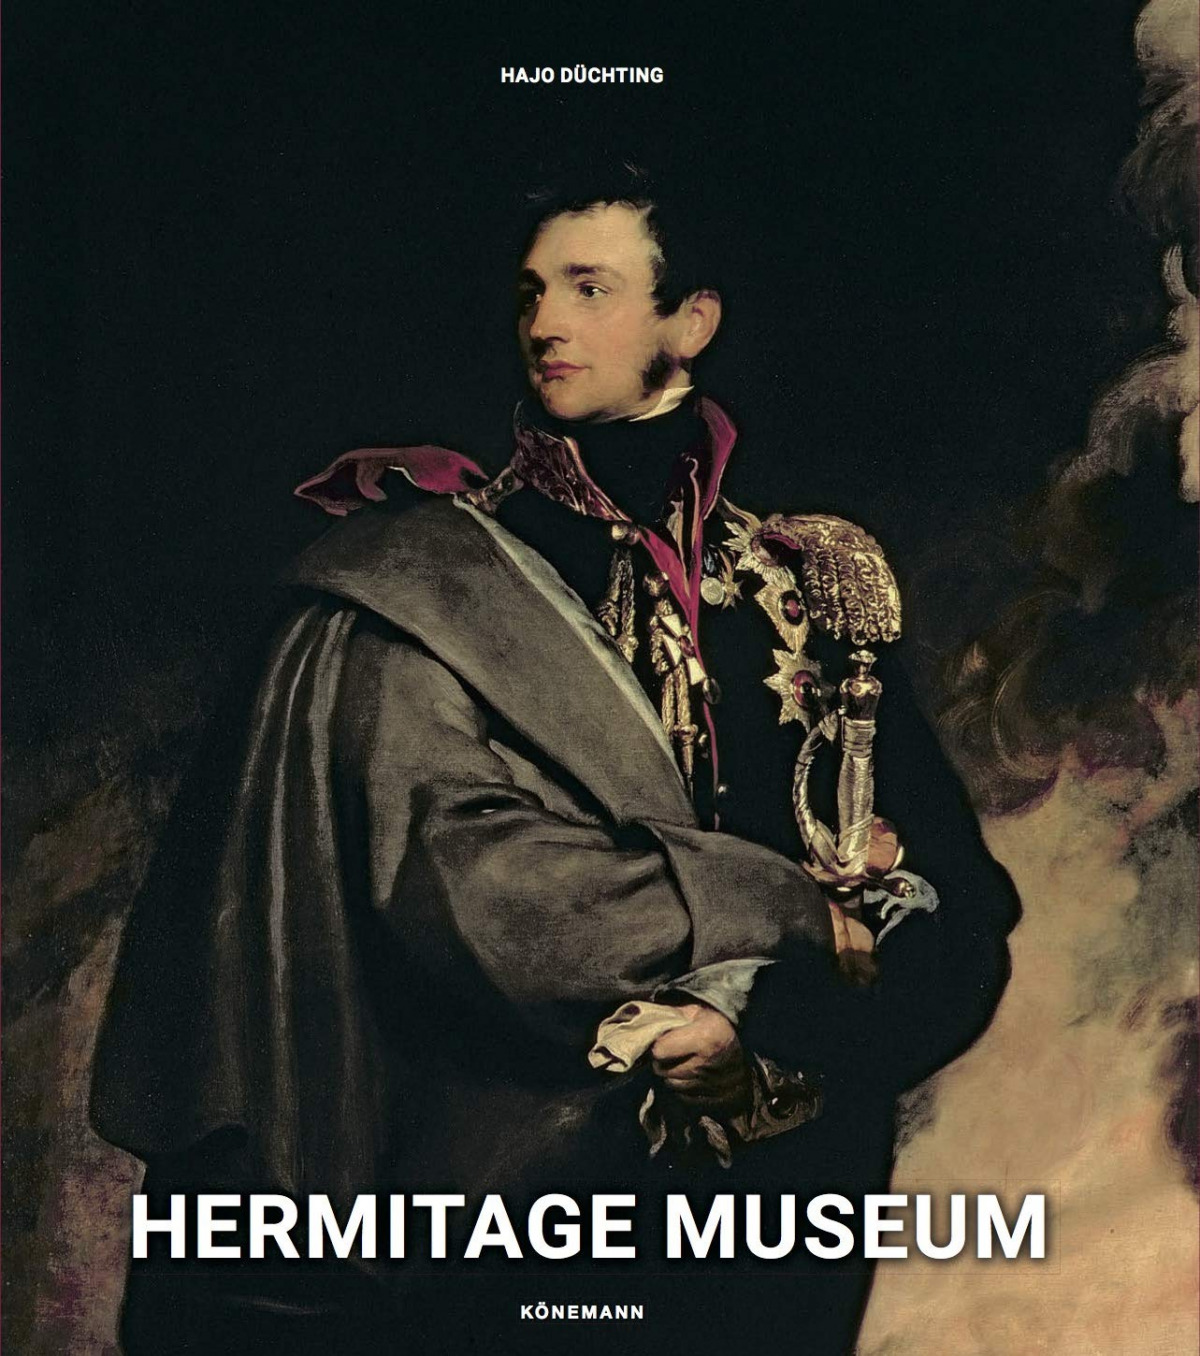 Museo hermitage 9783741924170